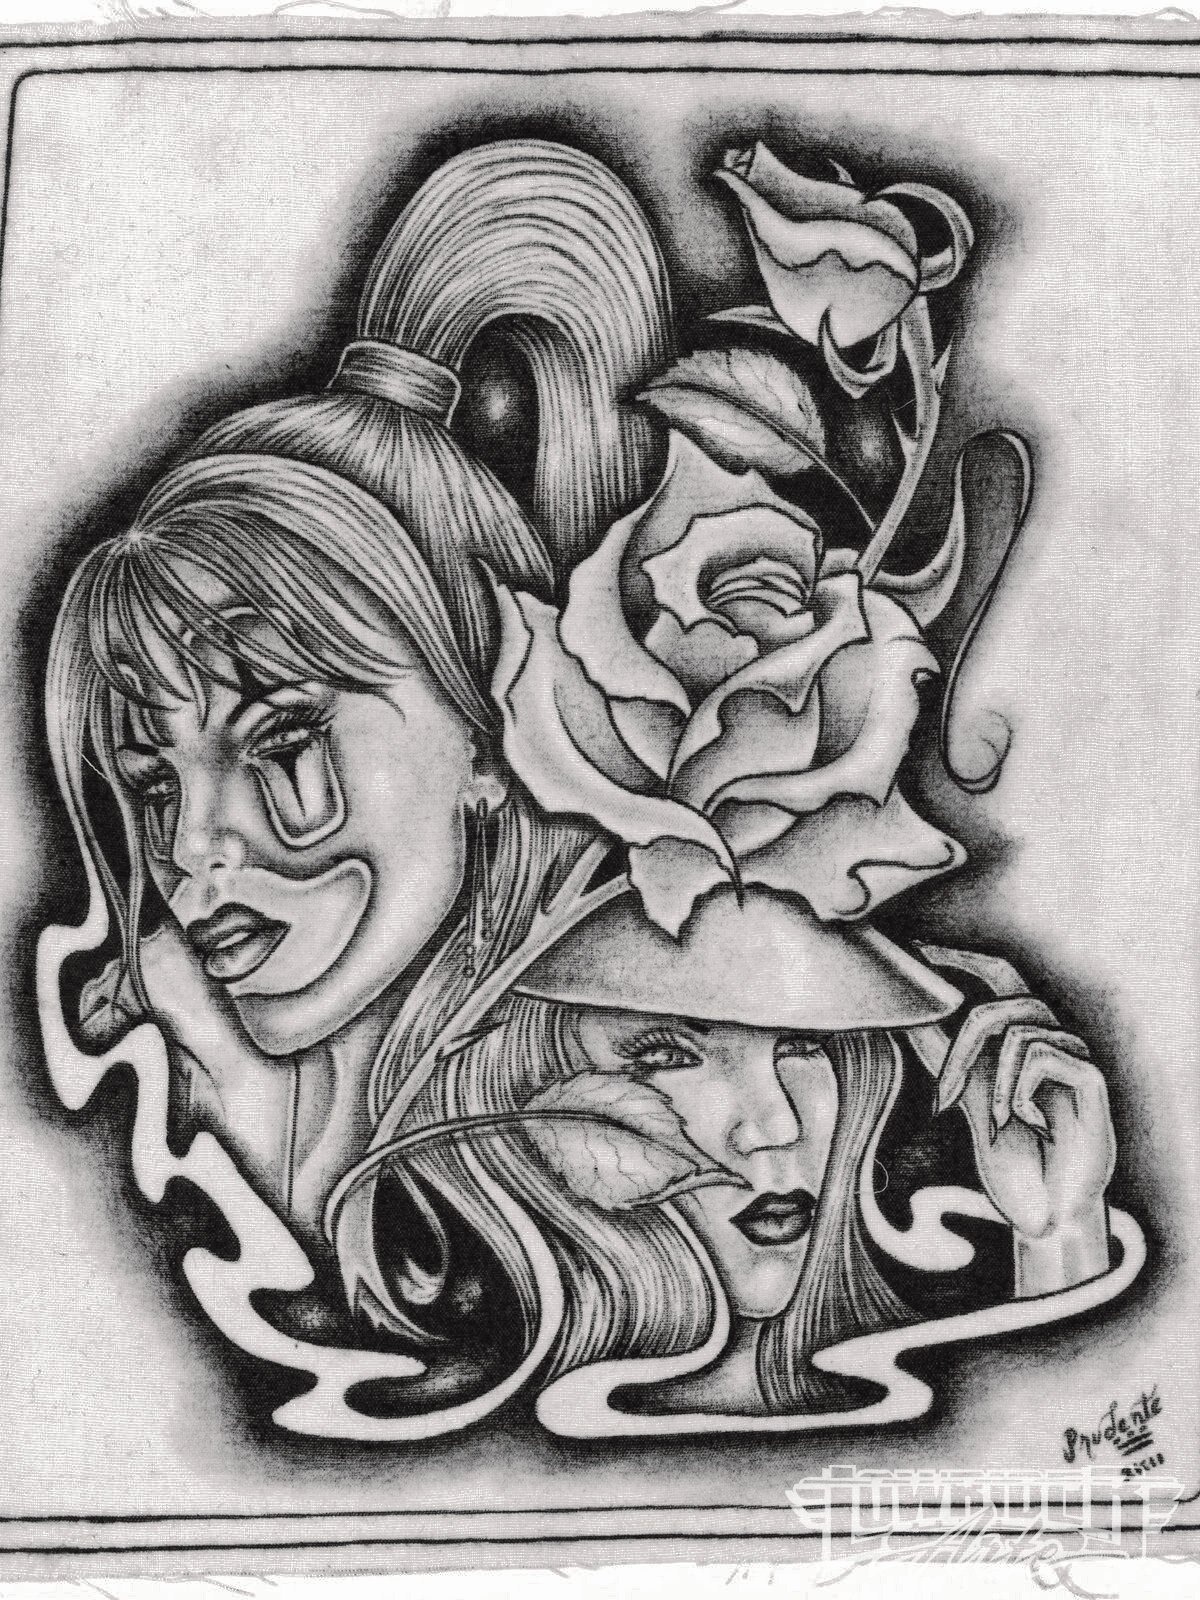 Black and White Drawings Awesome August September 2012 Black and White Art Lowrider Arte Magazine